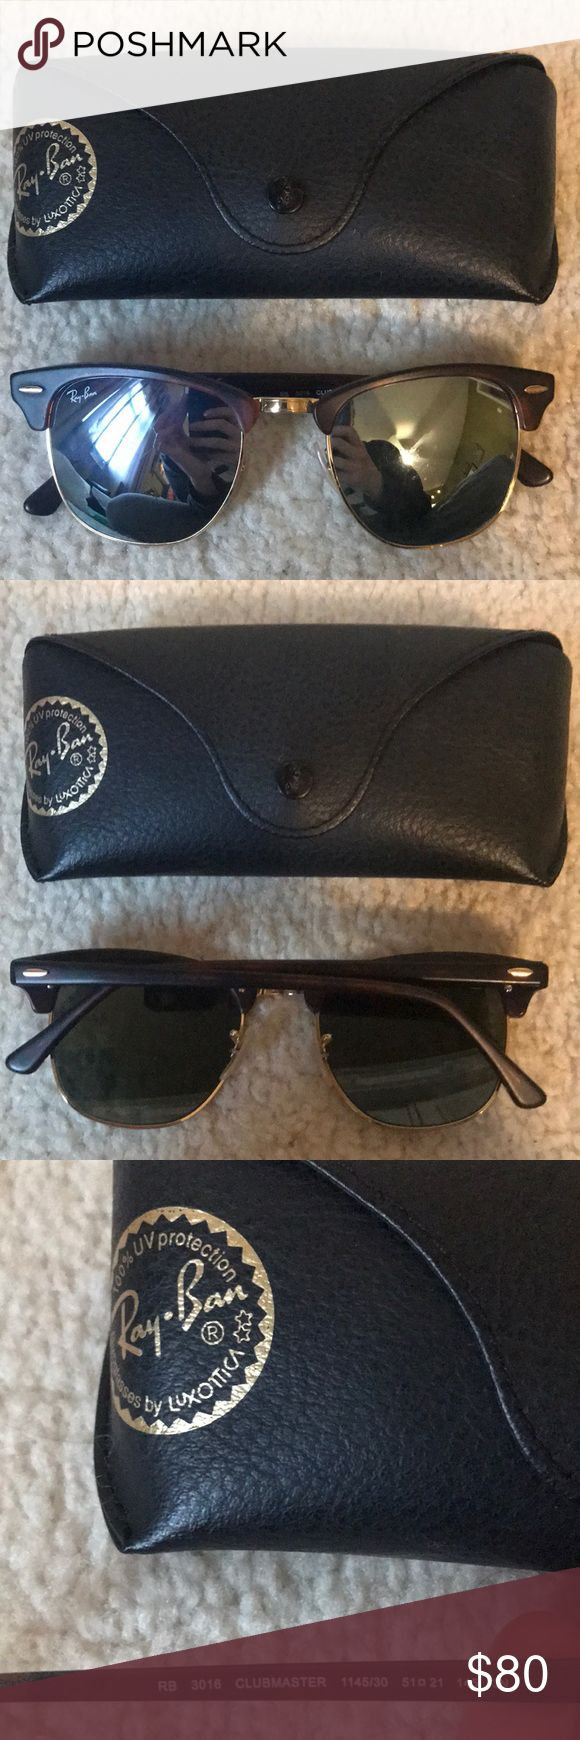 Club-master Raybans Reflective lenses club-master style authentic Raybans! Excellent condition, barely worn with minimal scratches. Perfect addition to any outfit! Ray-Ban Accessories Sunglasses